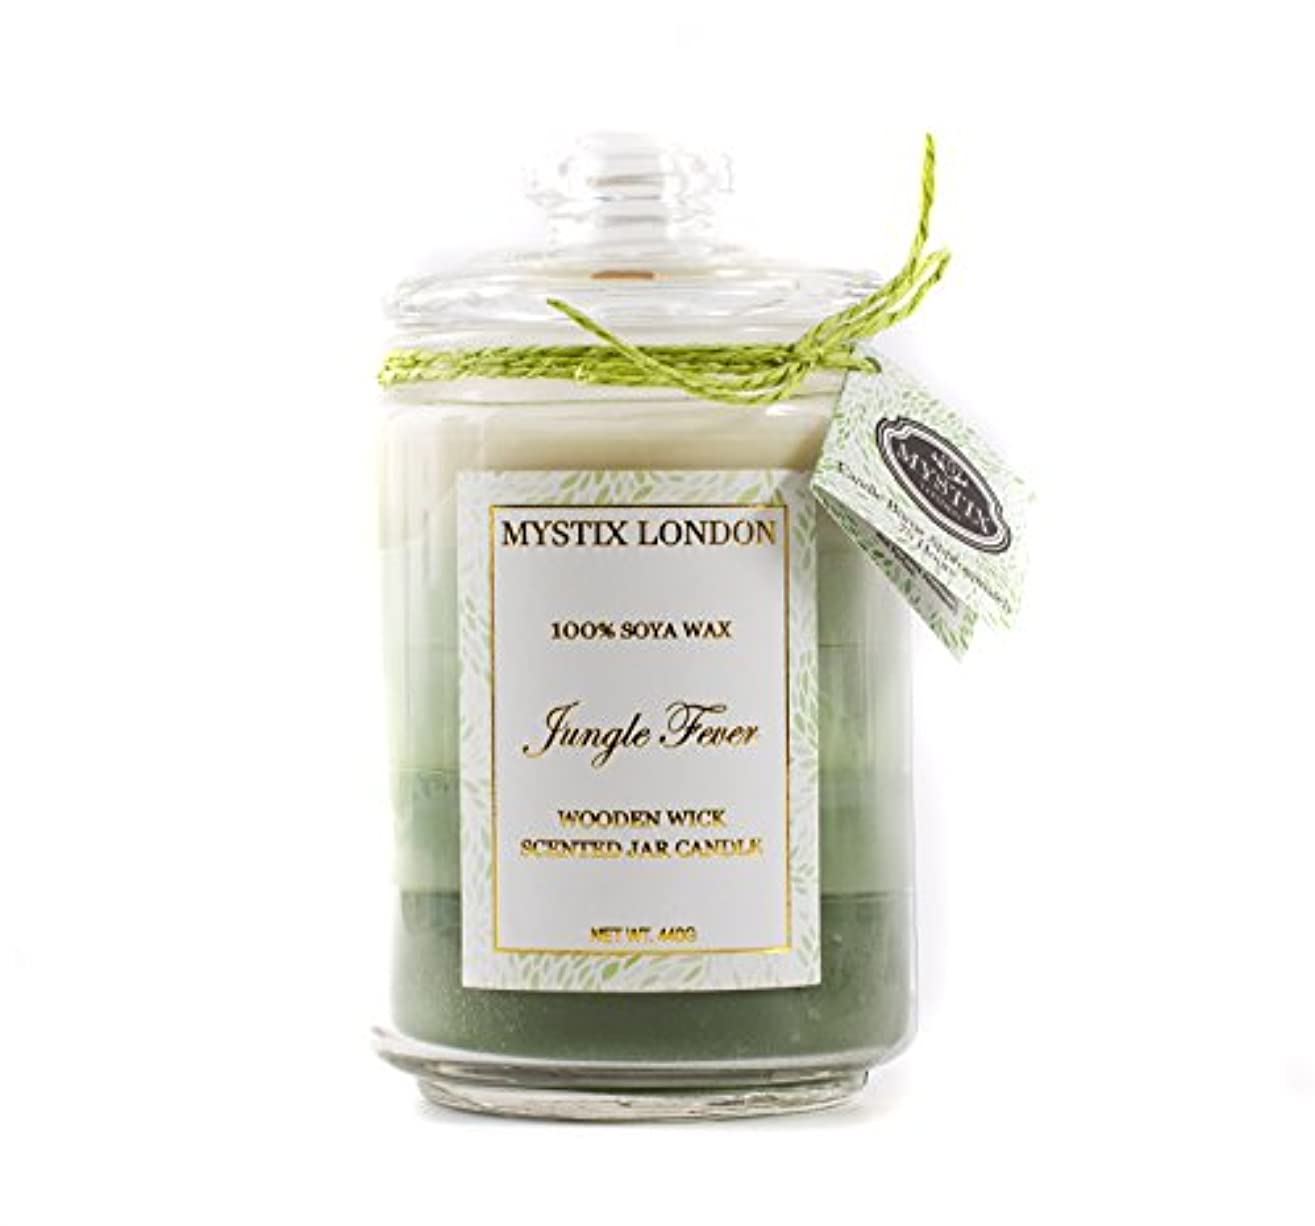 Mystix London | Jungle Fever Wooden Wick Scented Jar Candle 440g